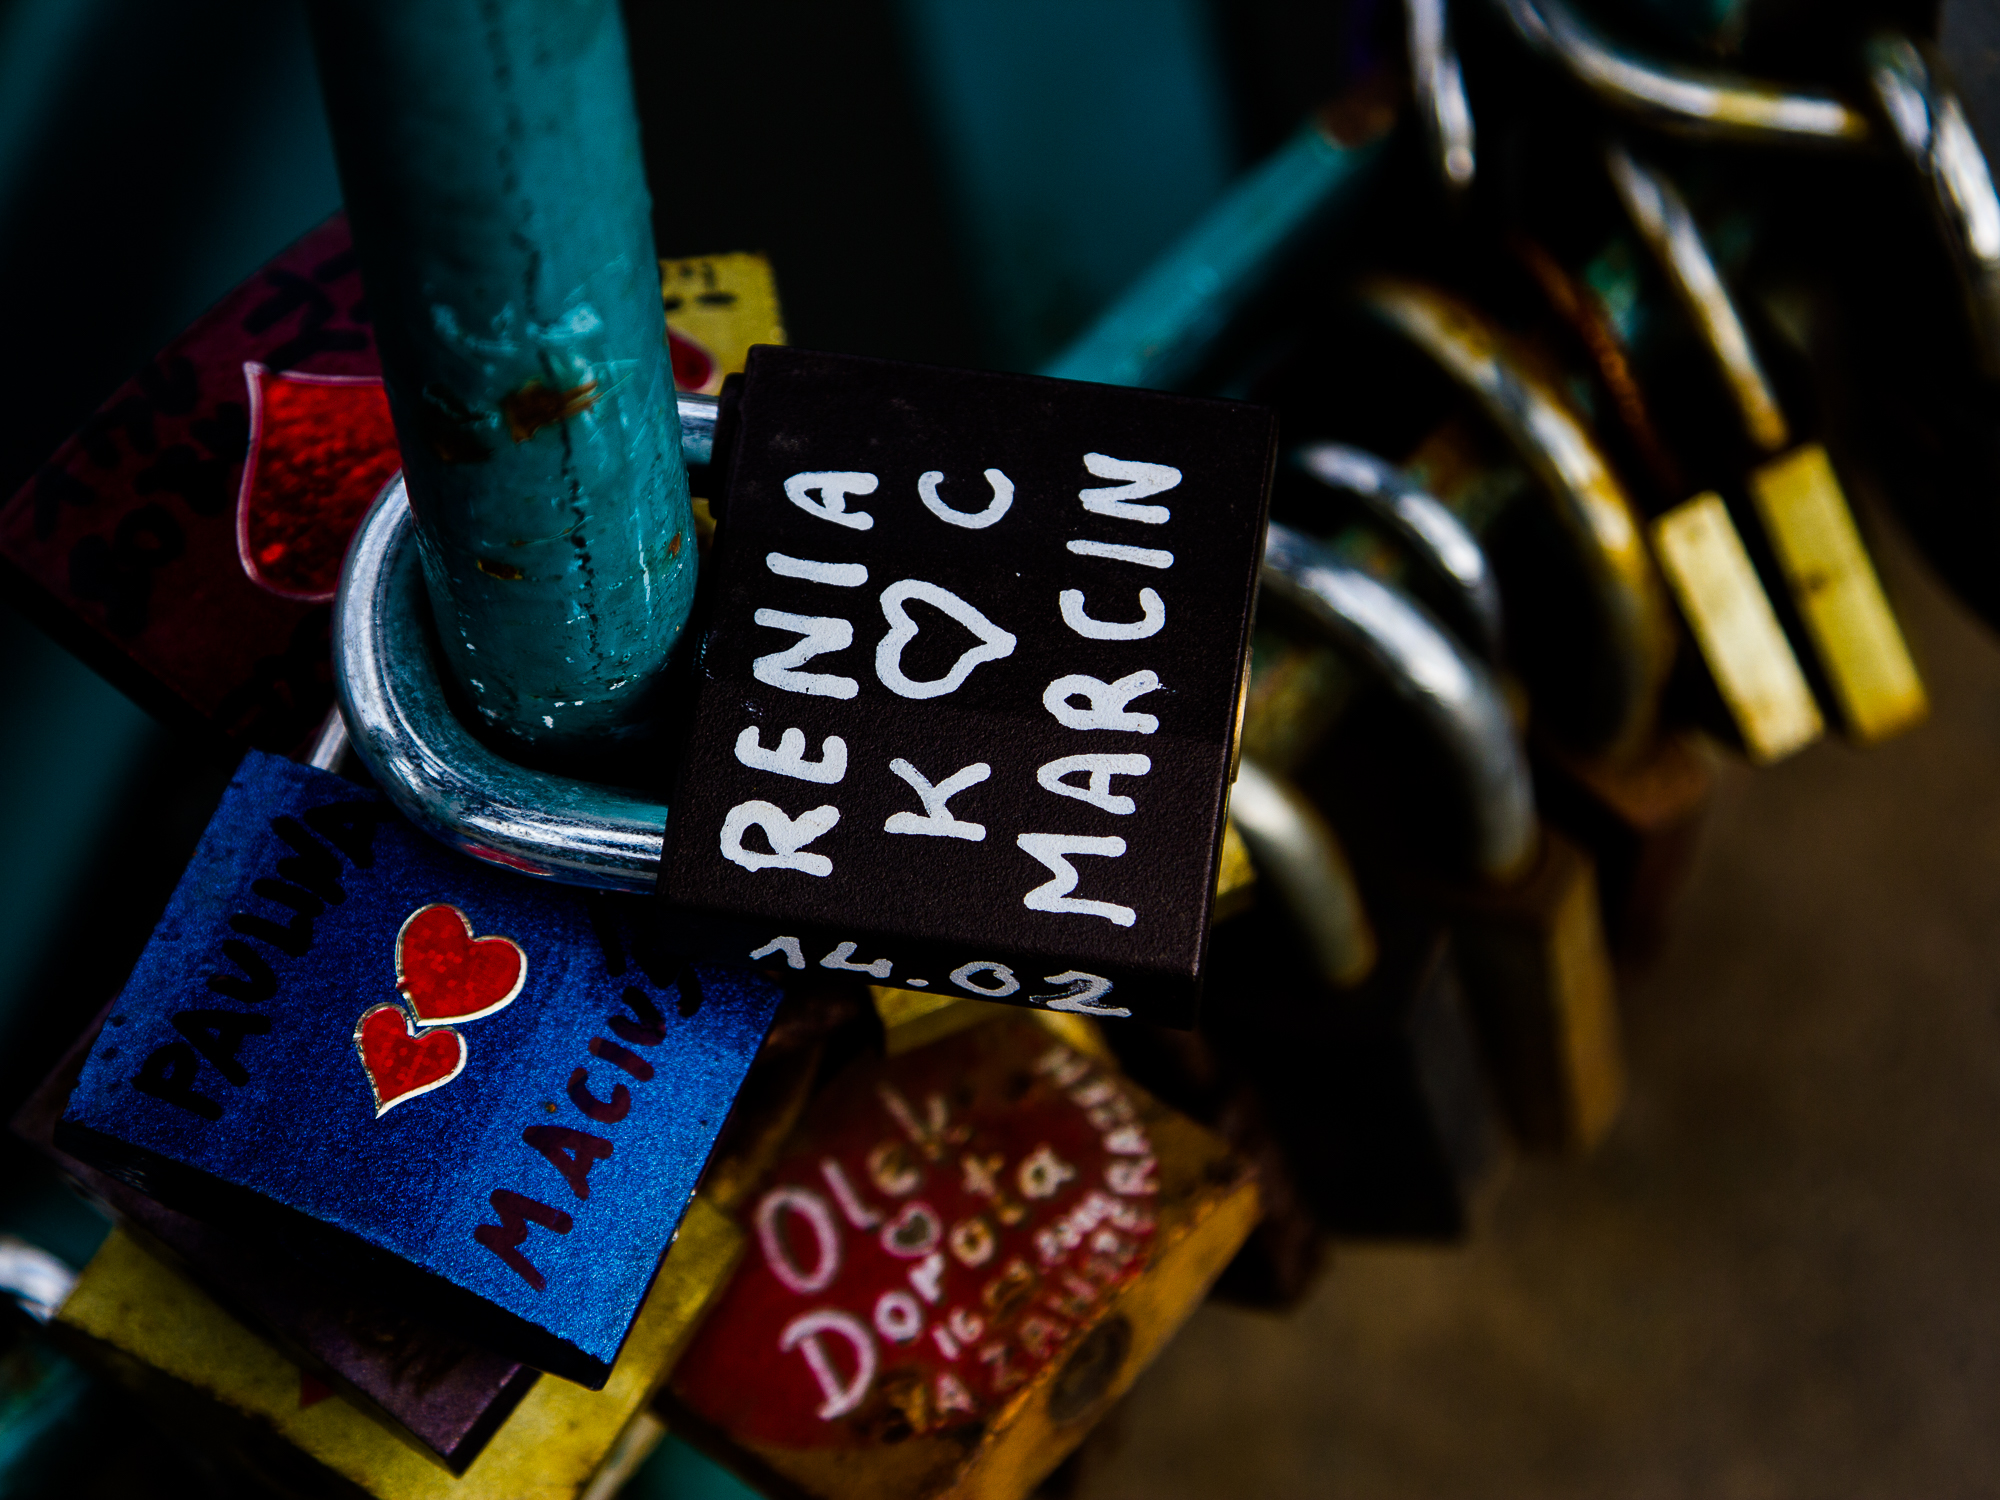 A padlock in Wroclaw, Poland